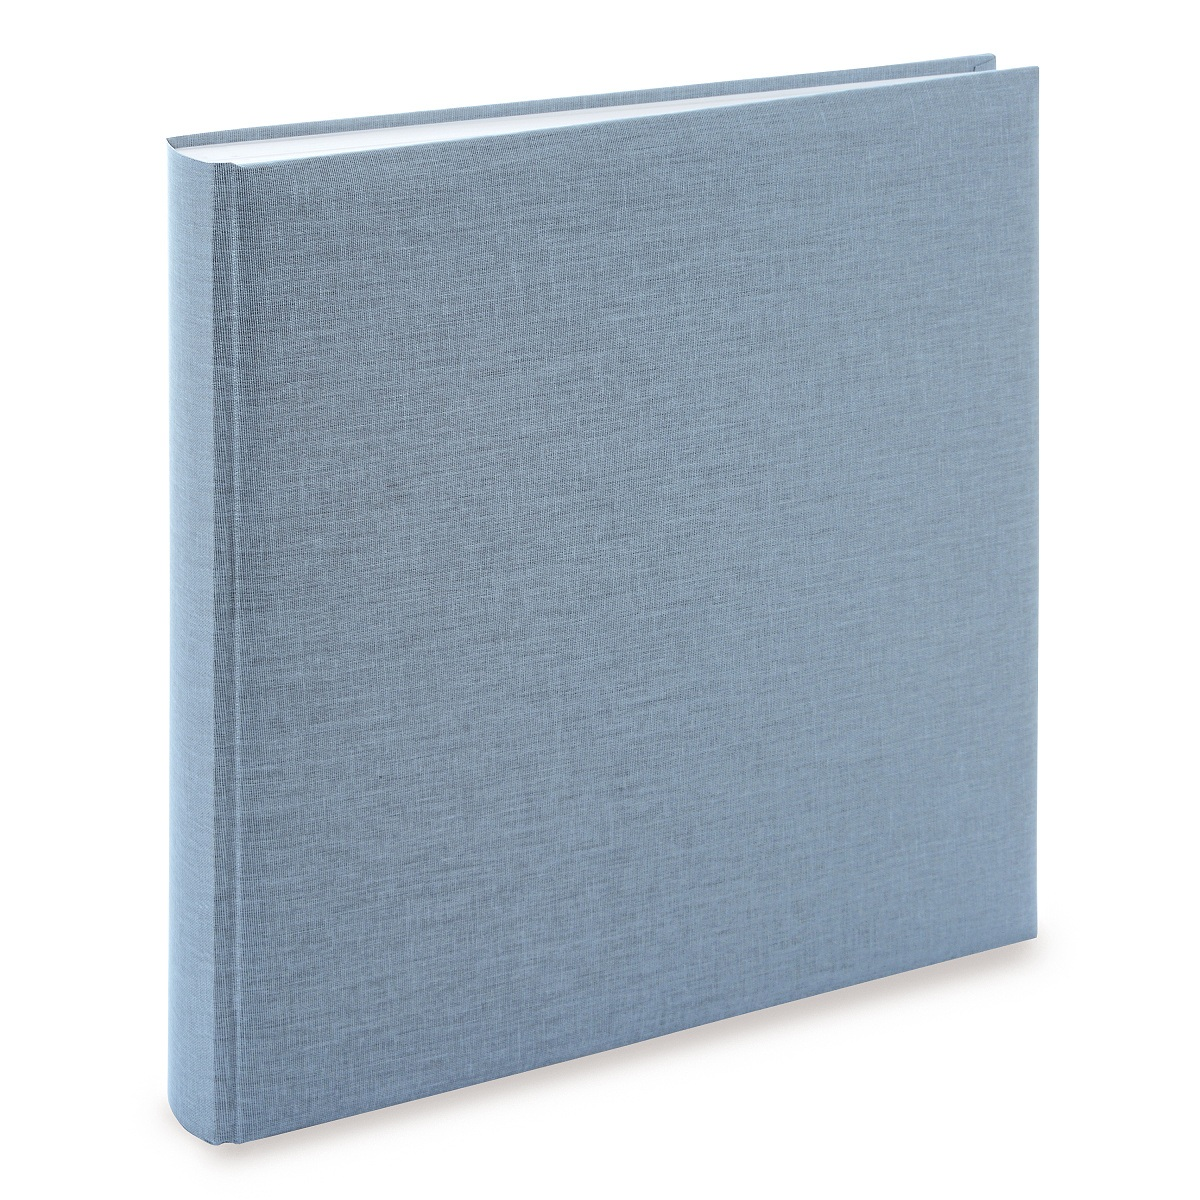 SUMMERTIME TREND 2 BLUE/GREY ALBUM P60 st. 30x31